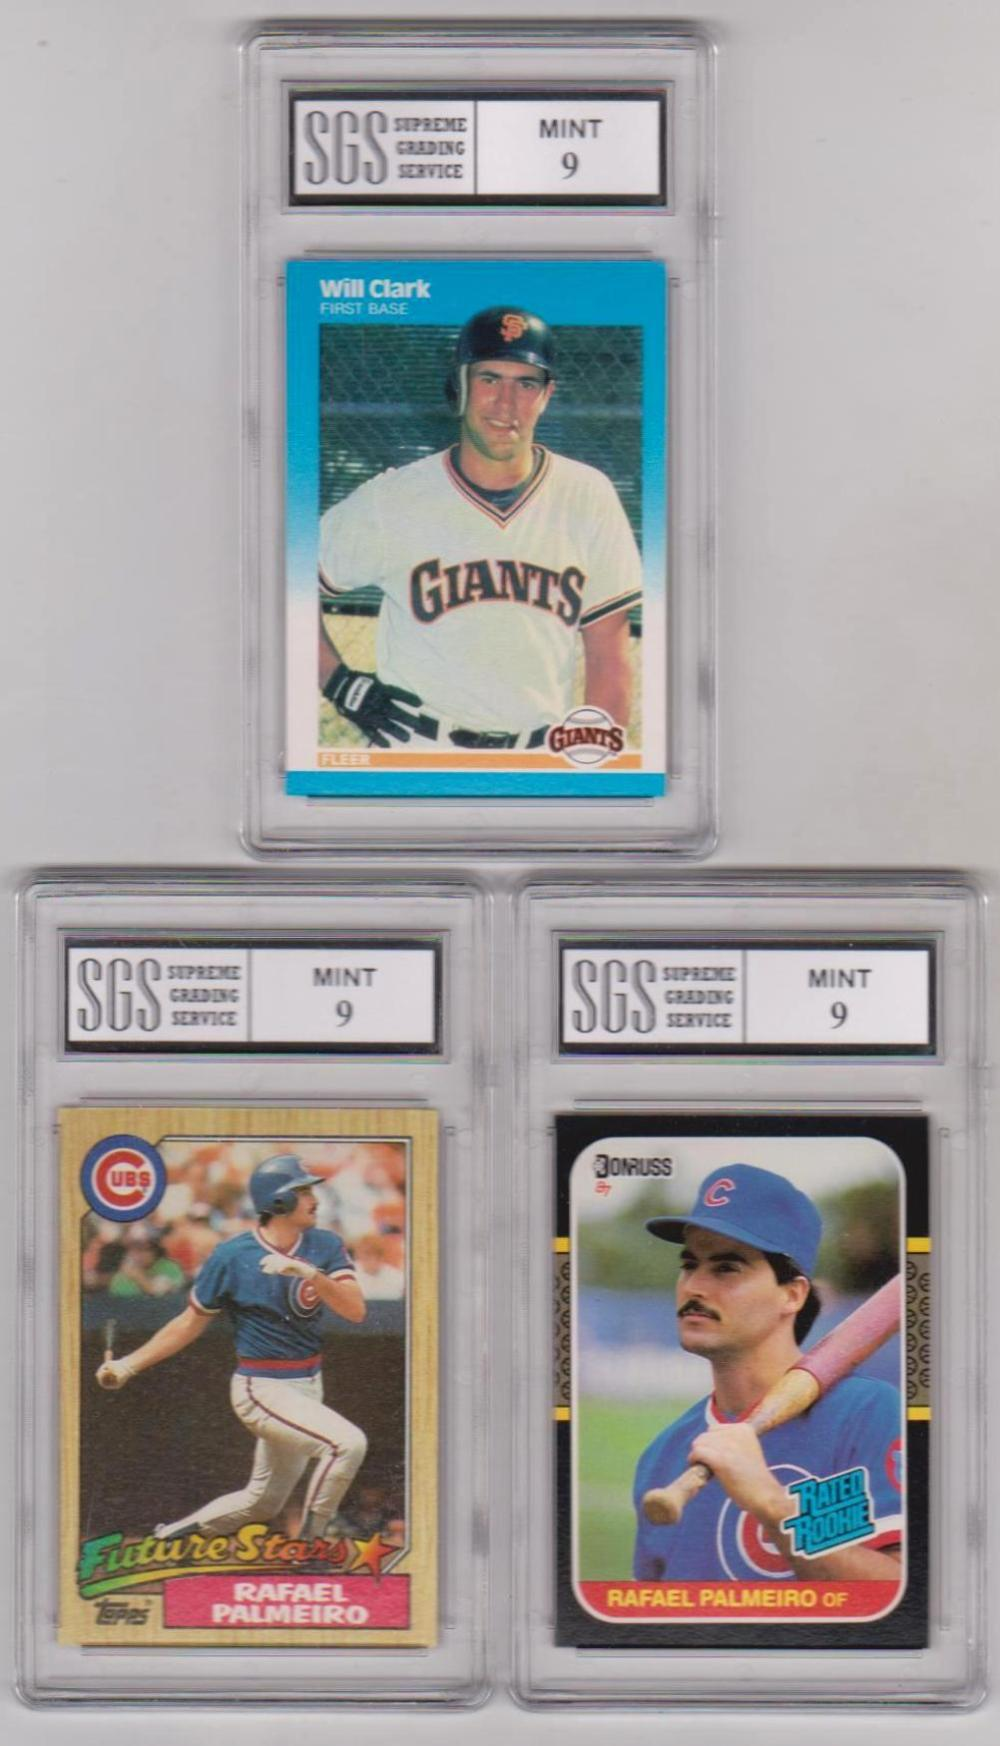 3 Different Graded Mint 9 Baseball Rookie Cards (Will Clark + Rafael Palmeiro x 2)